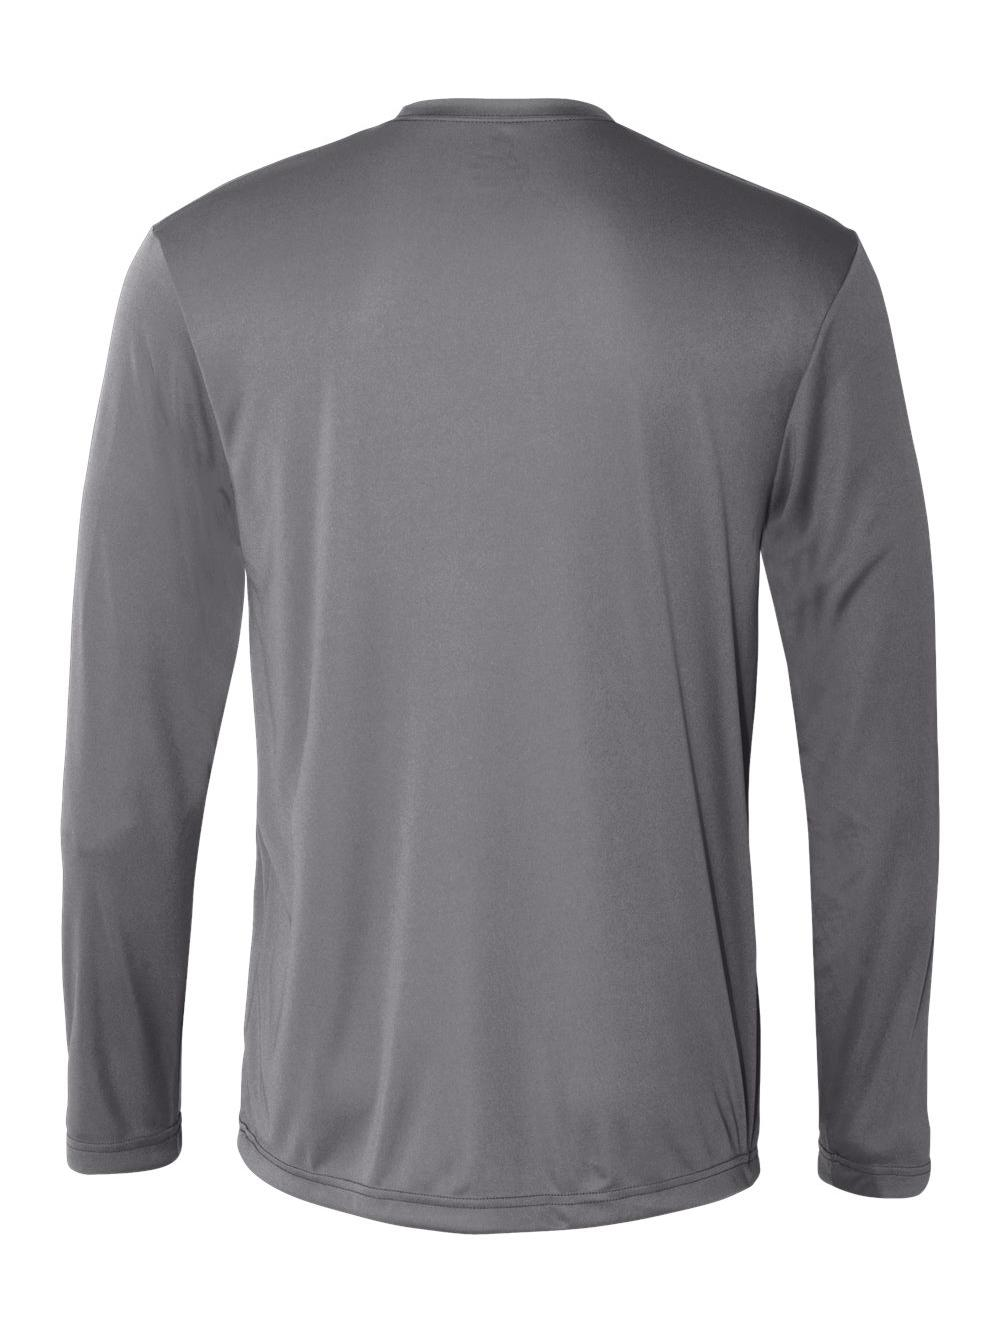 Hanes-Cool-Dri-Long-Sleeve-Performance-T-Shirt-482L thumbnail 13